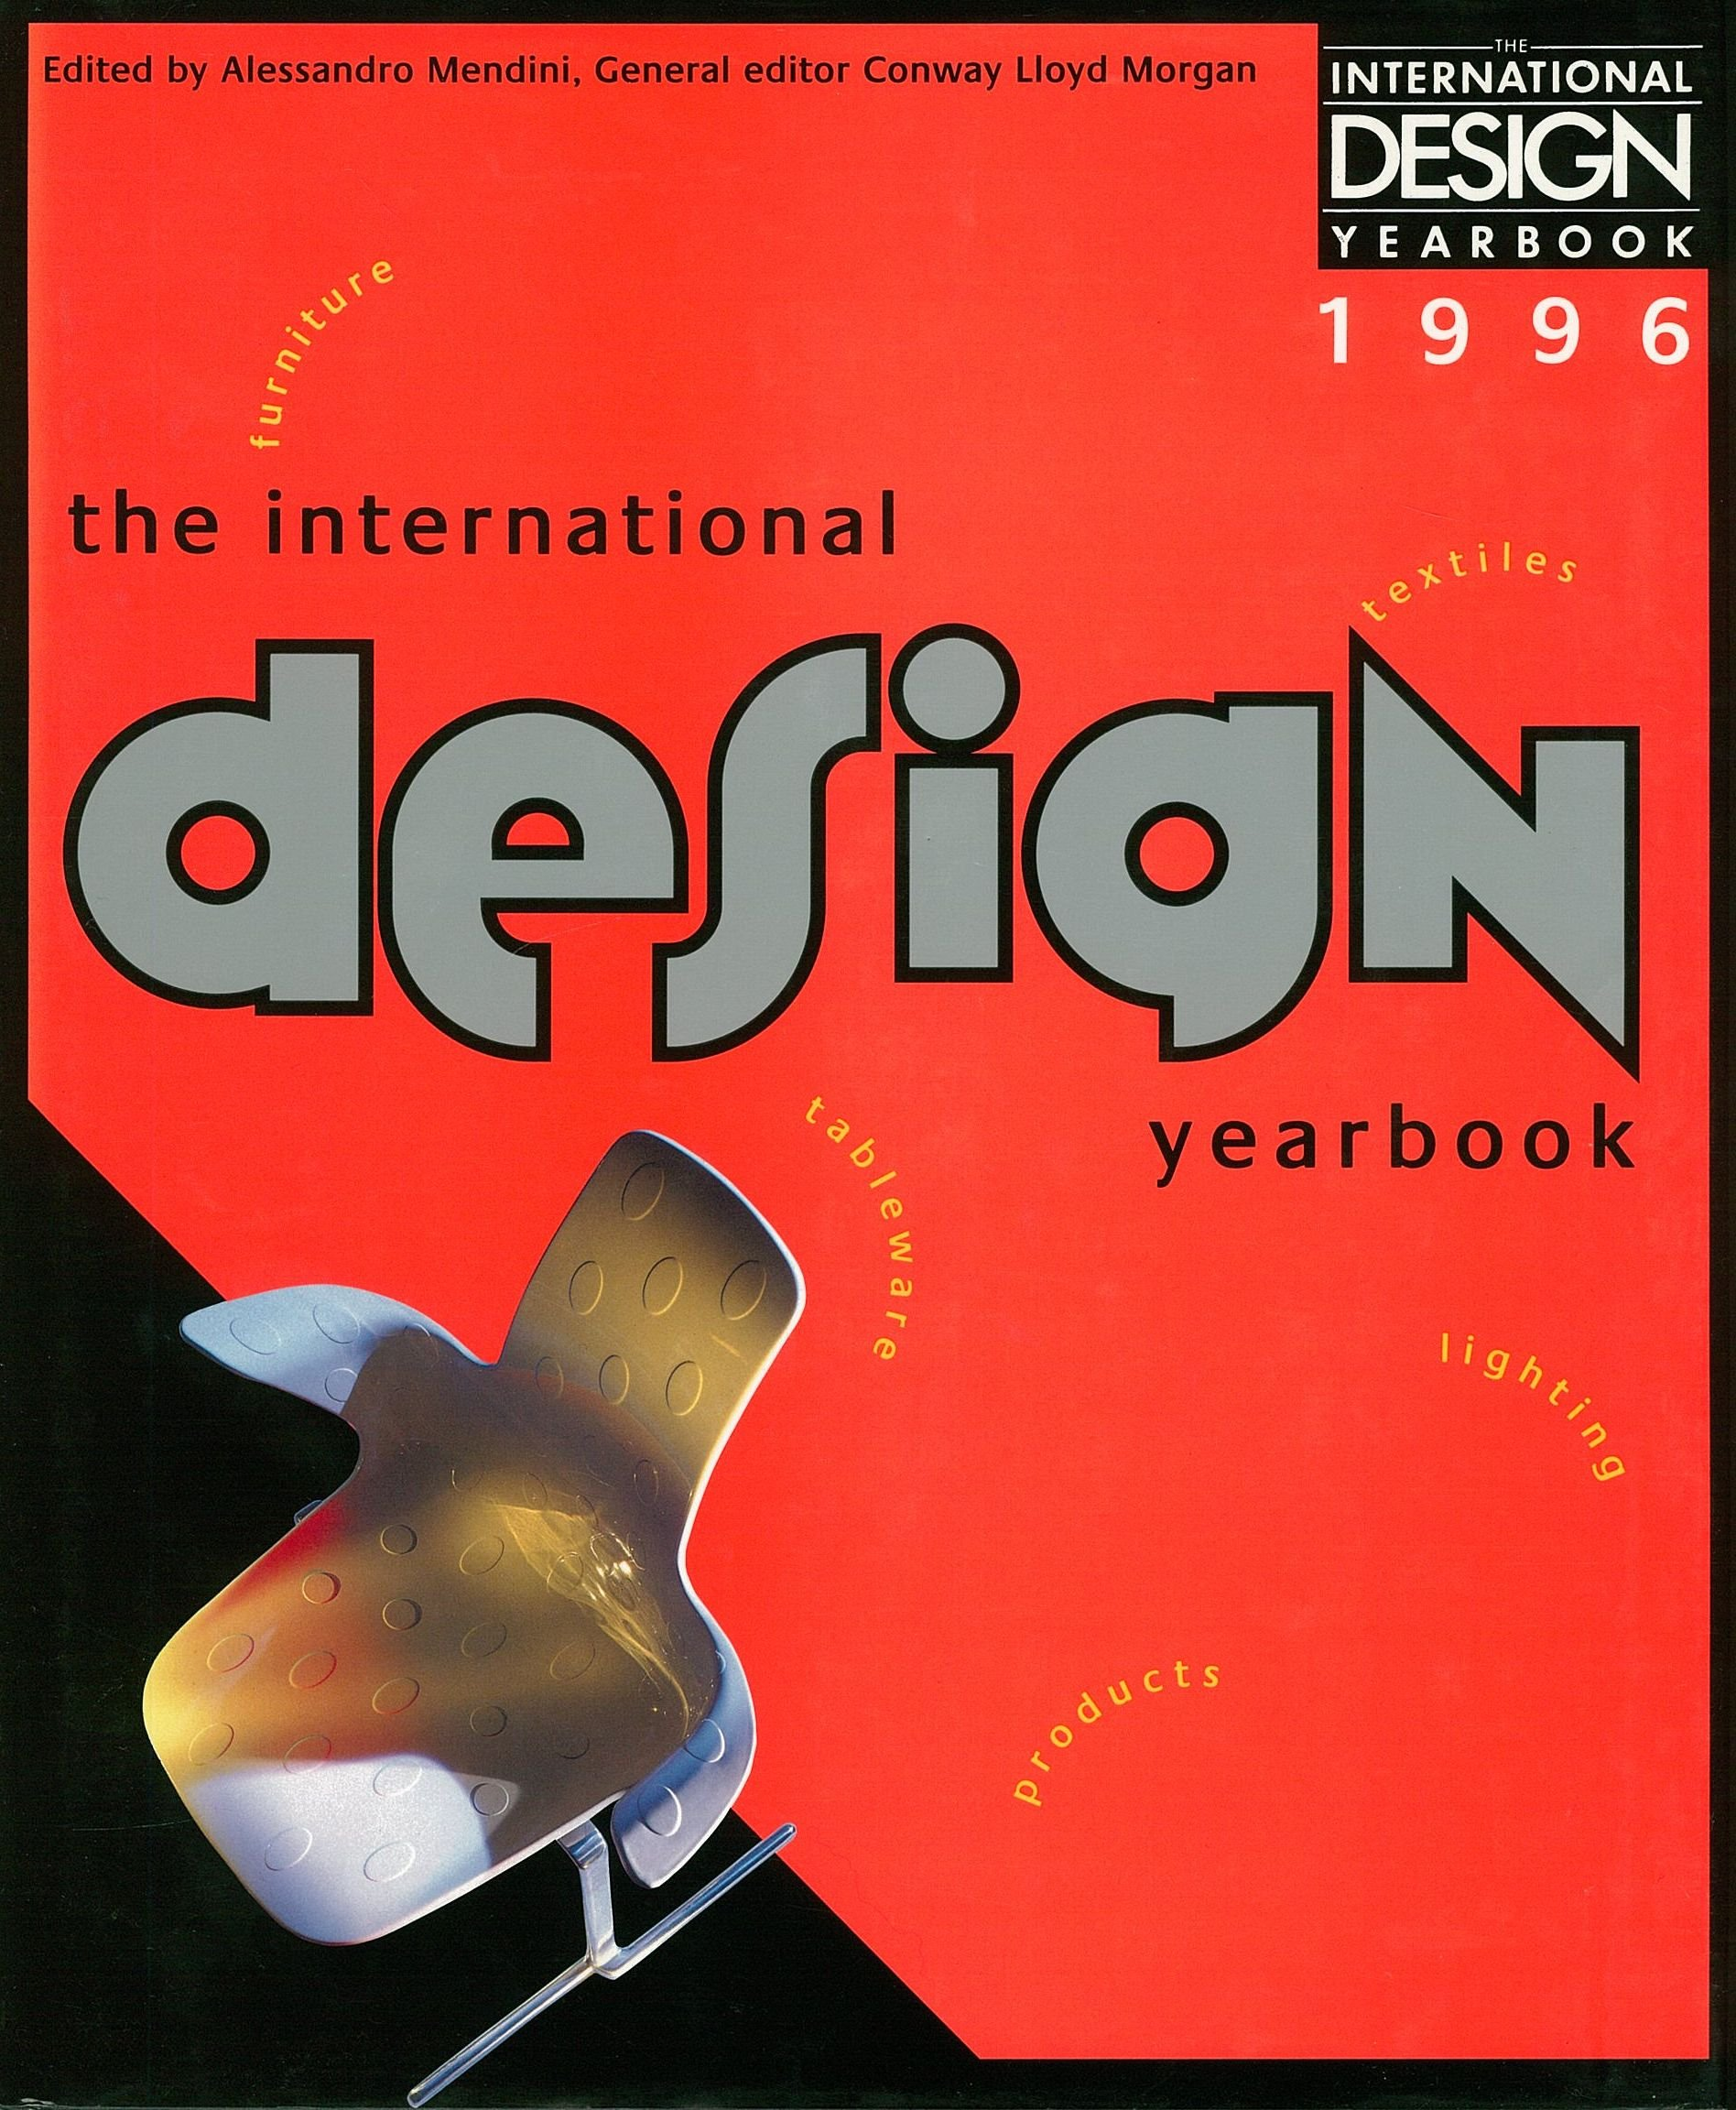 The International Design Yearbook: 1996 (The International Design Yearbook)